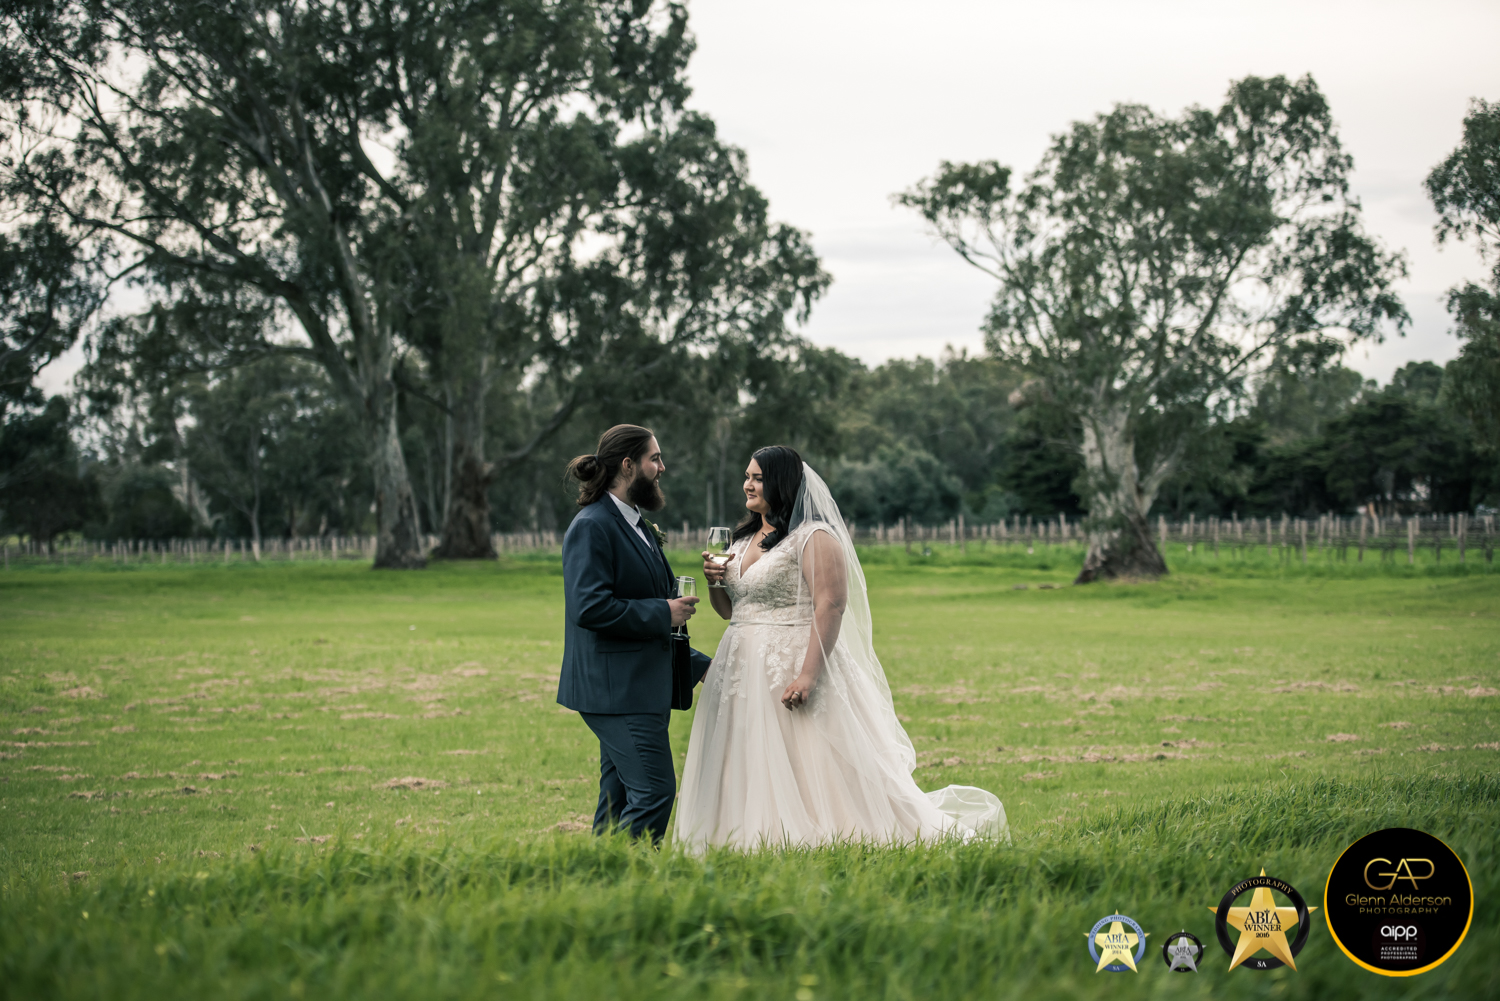 Karlee & Lachlan 01092017 WM (11 of 12)